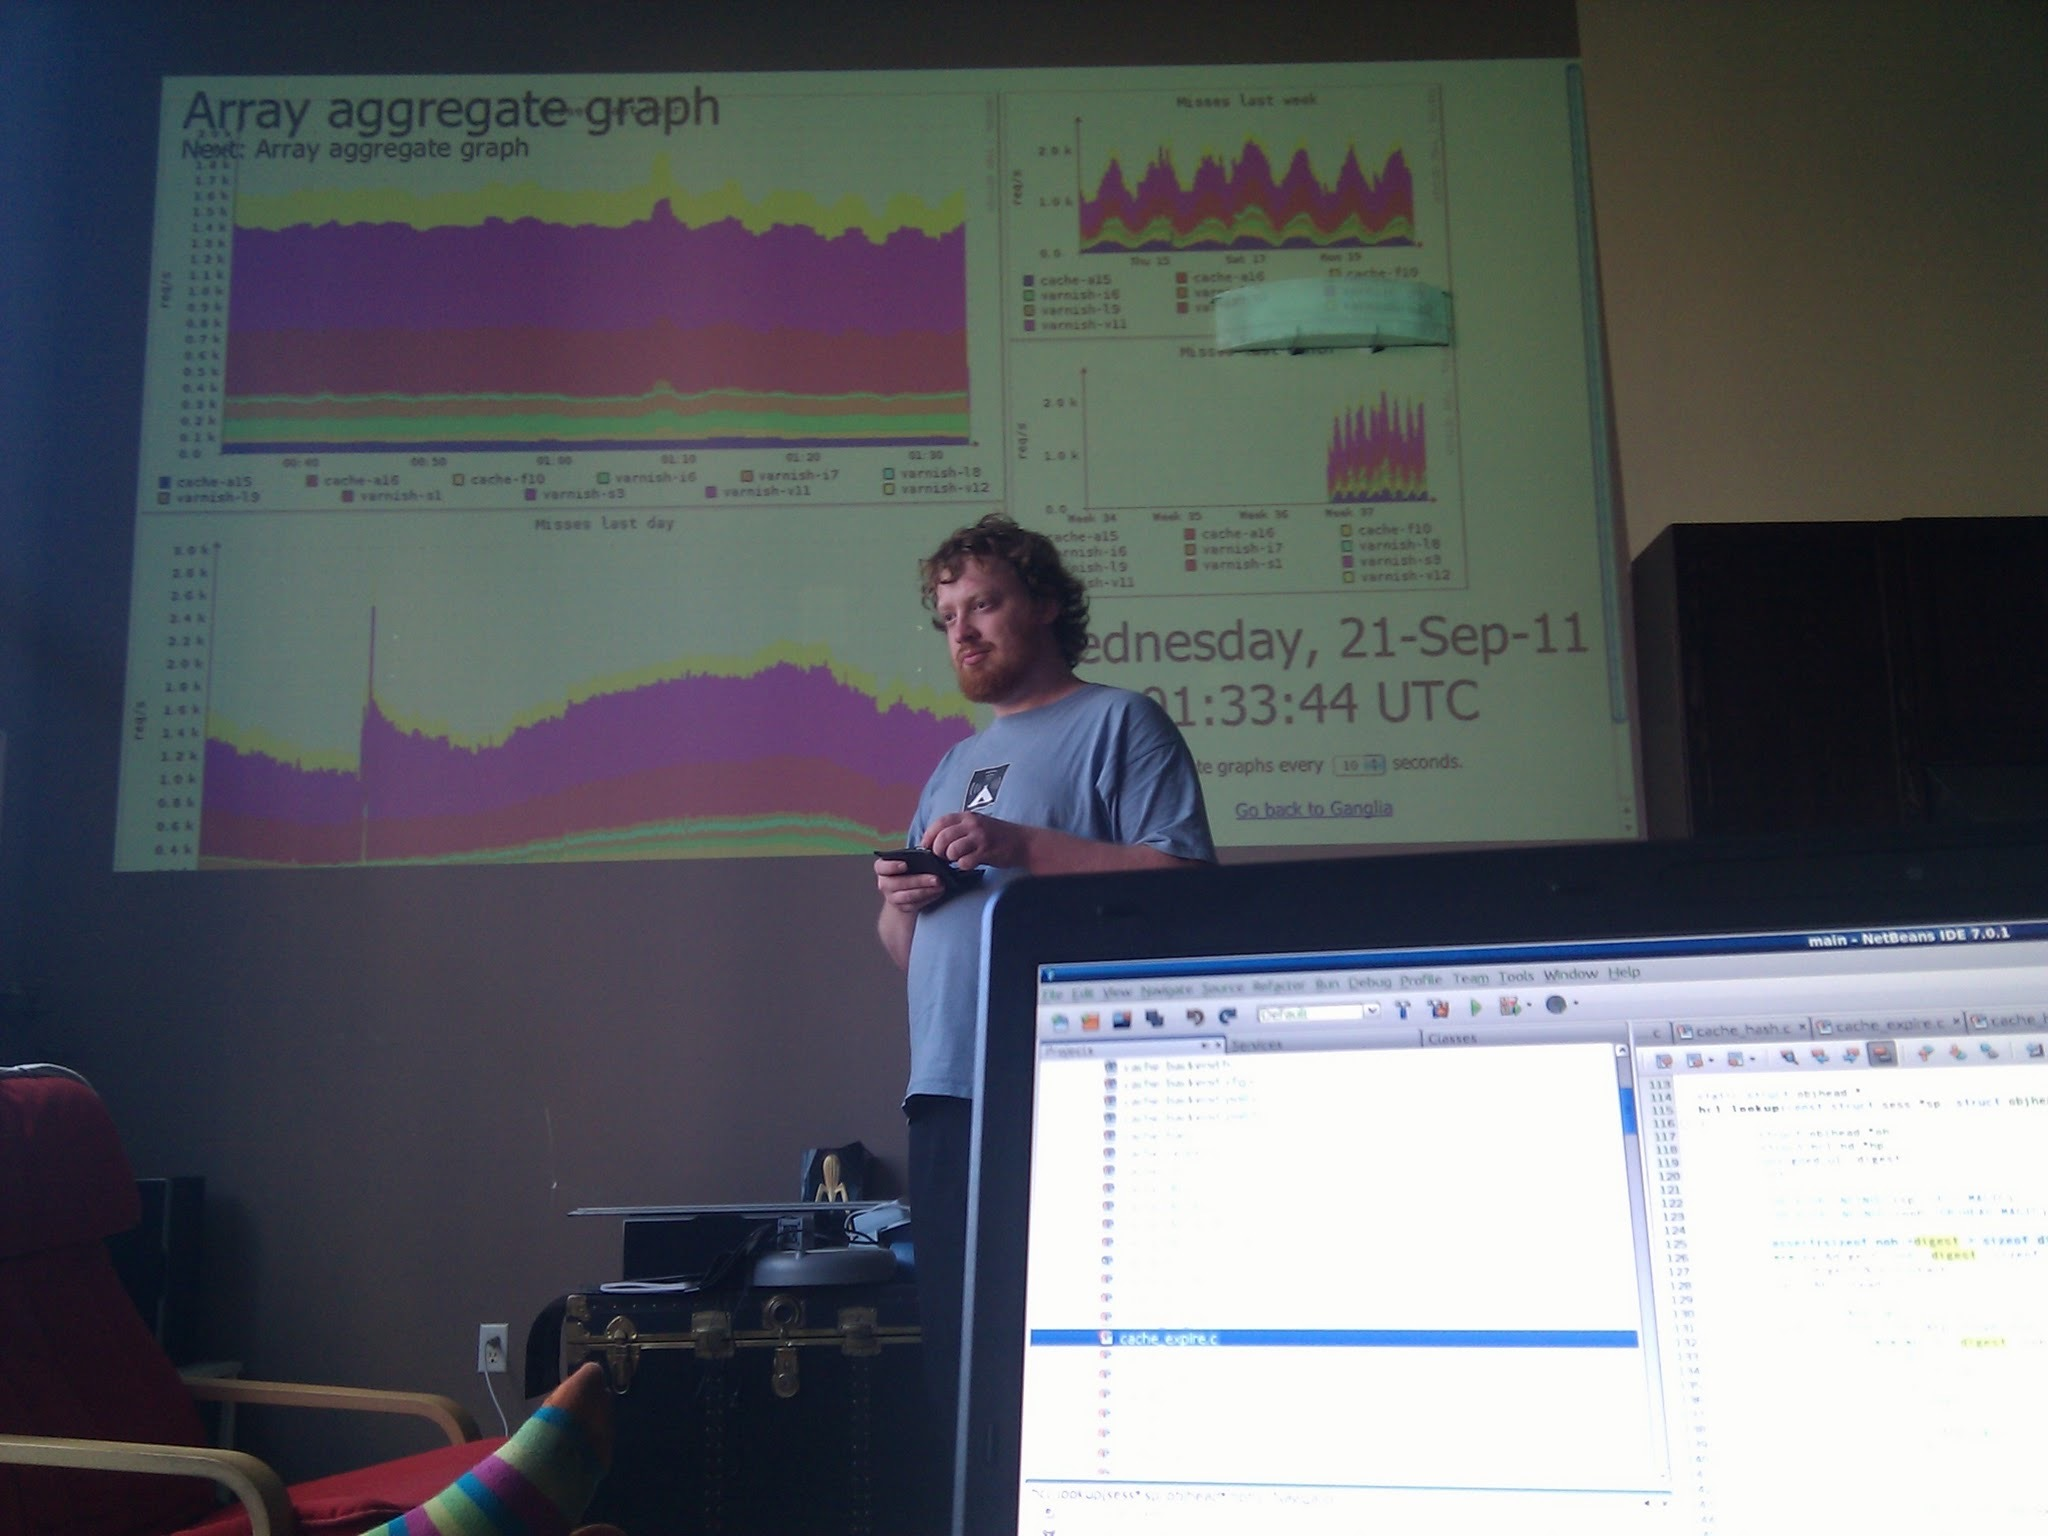 Artur runs a Fastly meeting from his living room in 2011.